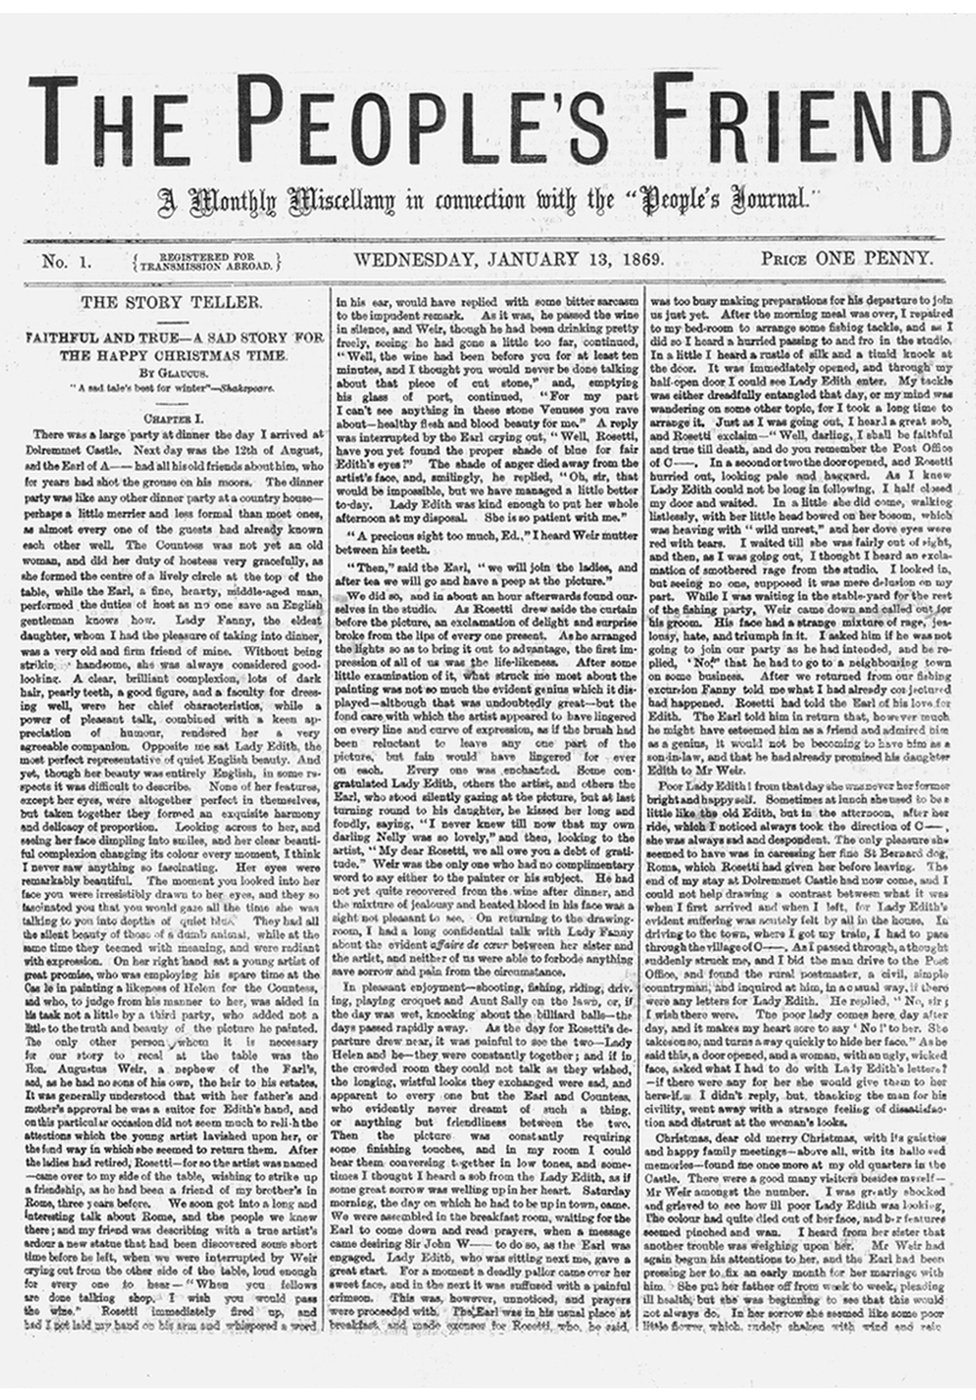 The first ever edition of the People's Friend in January 1869